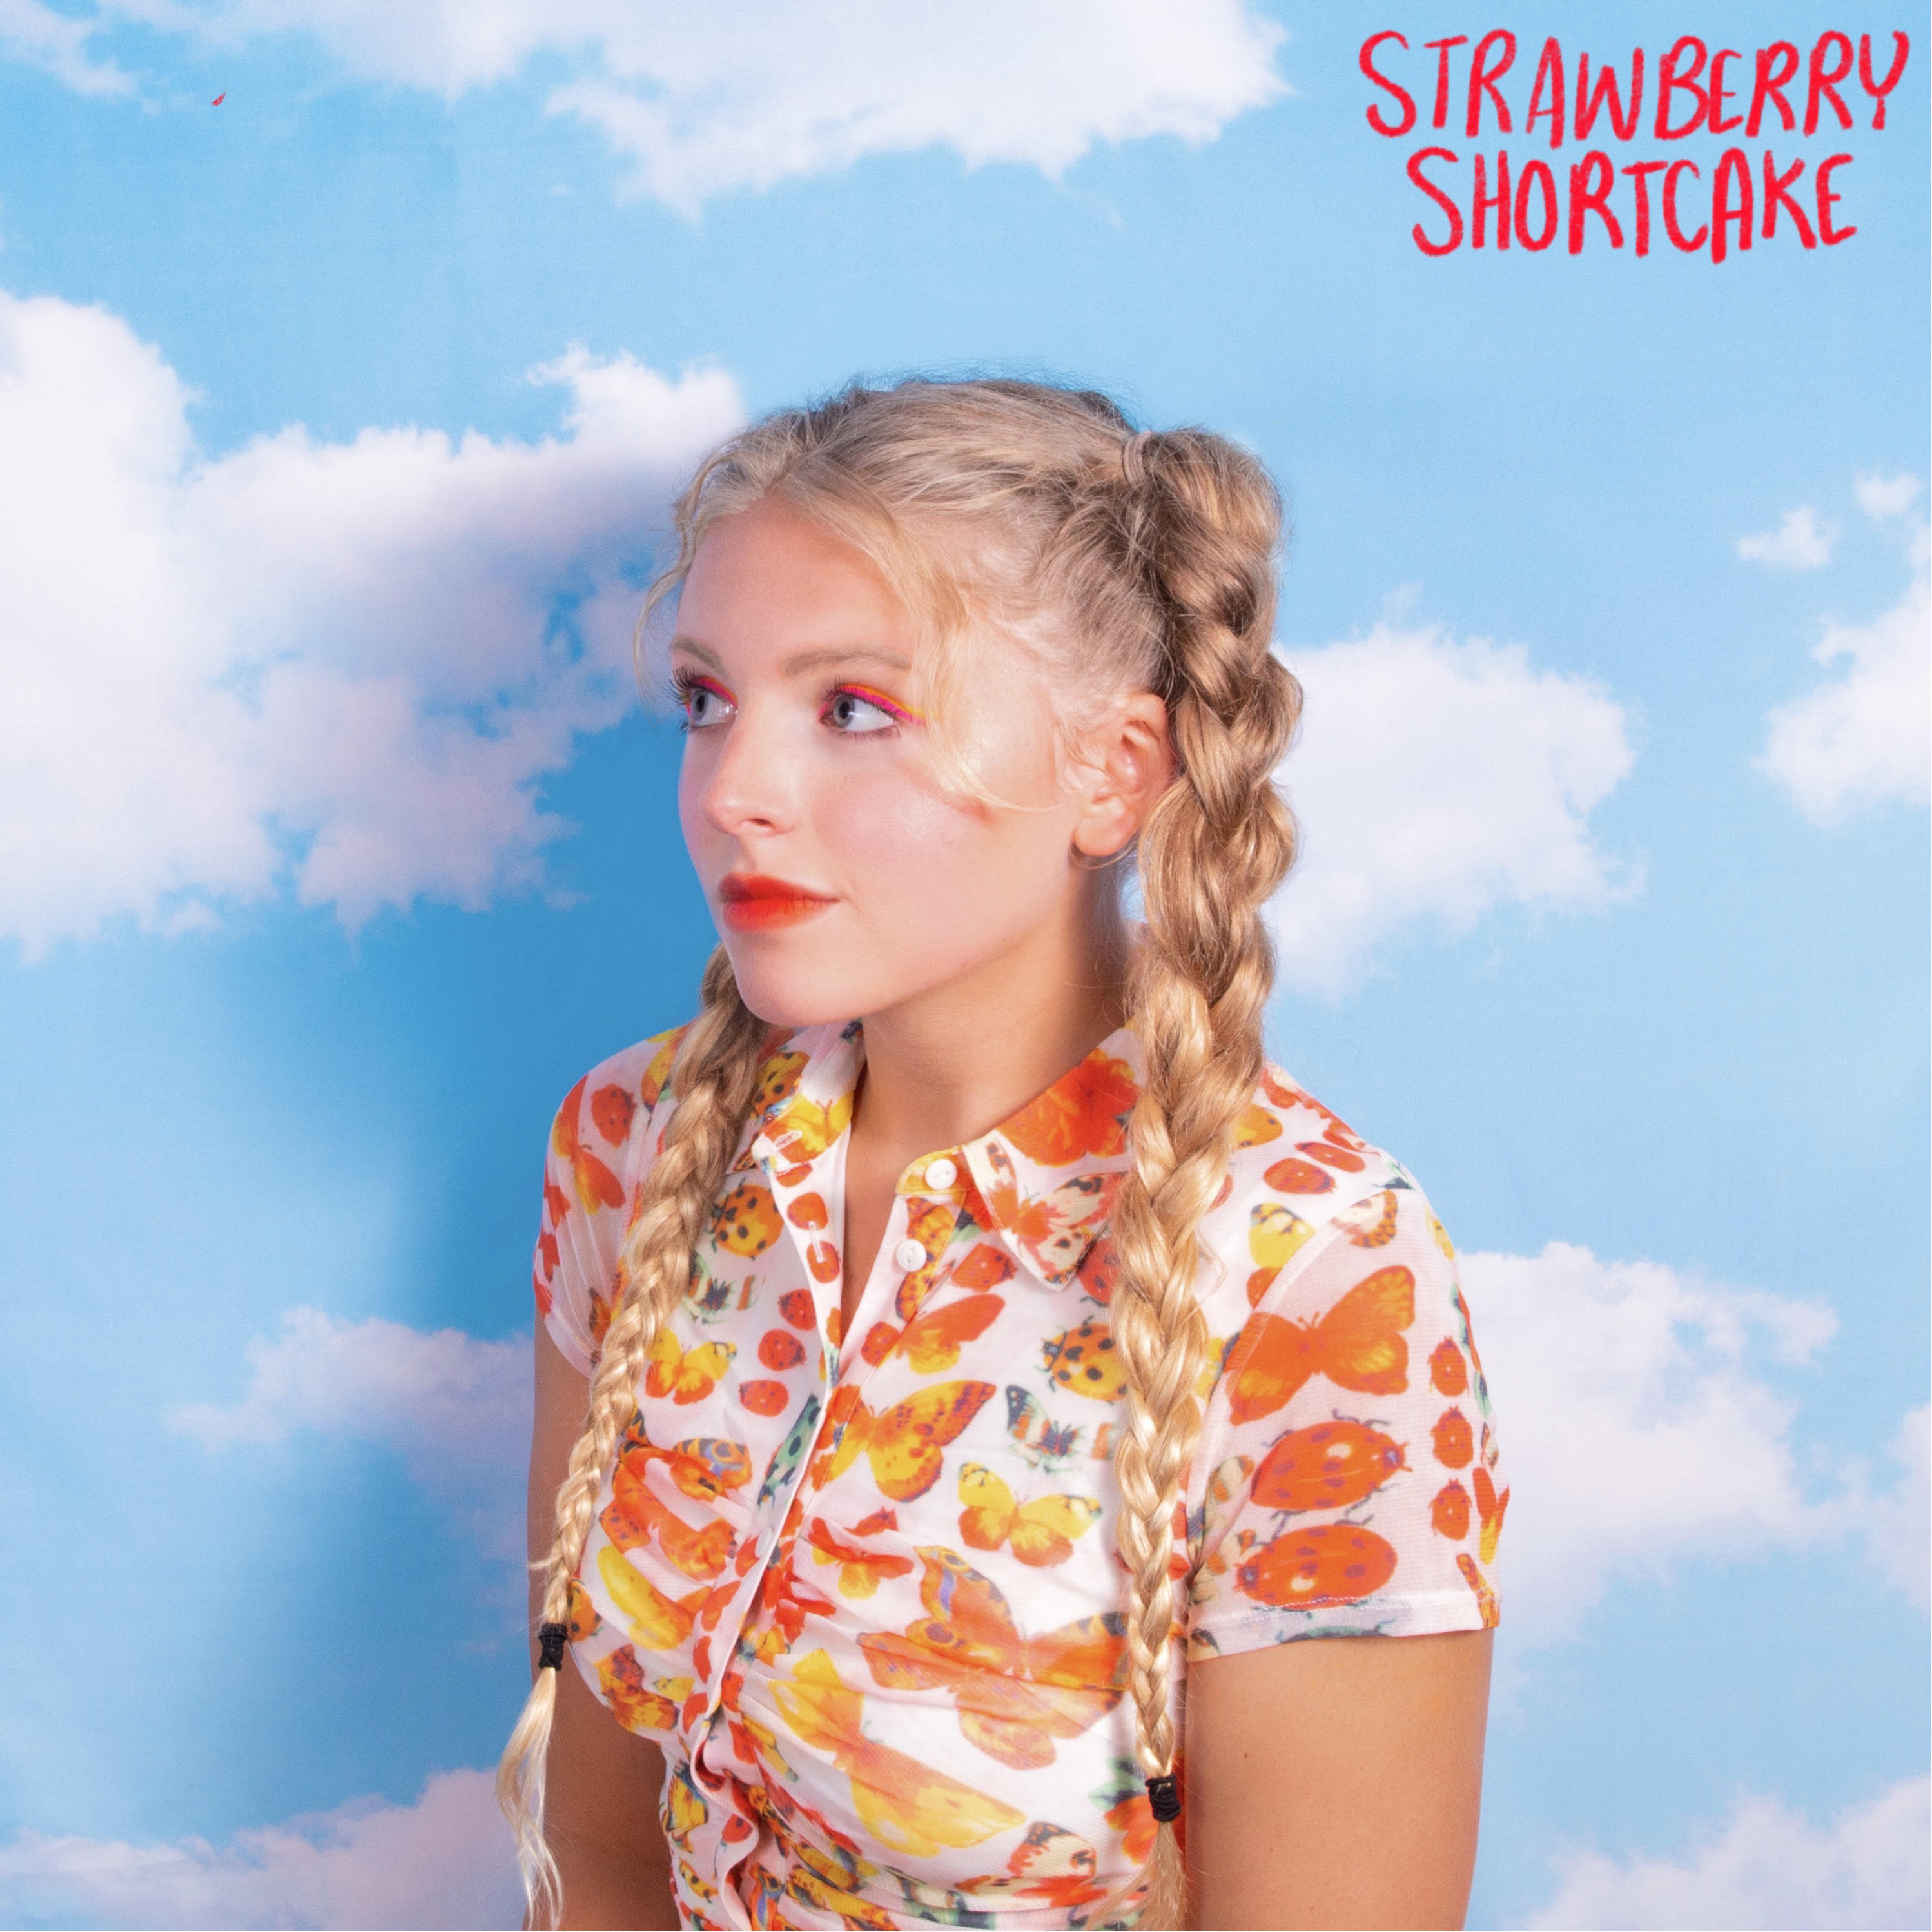 """McKenna Camille's New Single """"Strawberry Shortcake"""" is Savoring the Summer Vibes"""